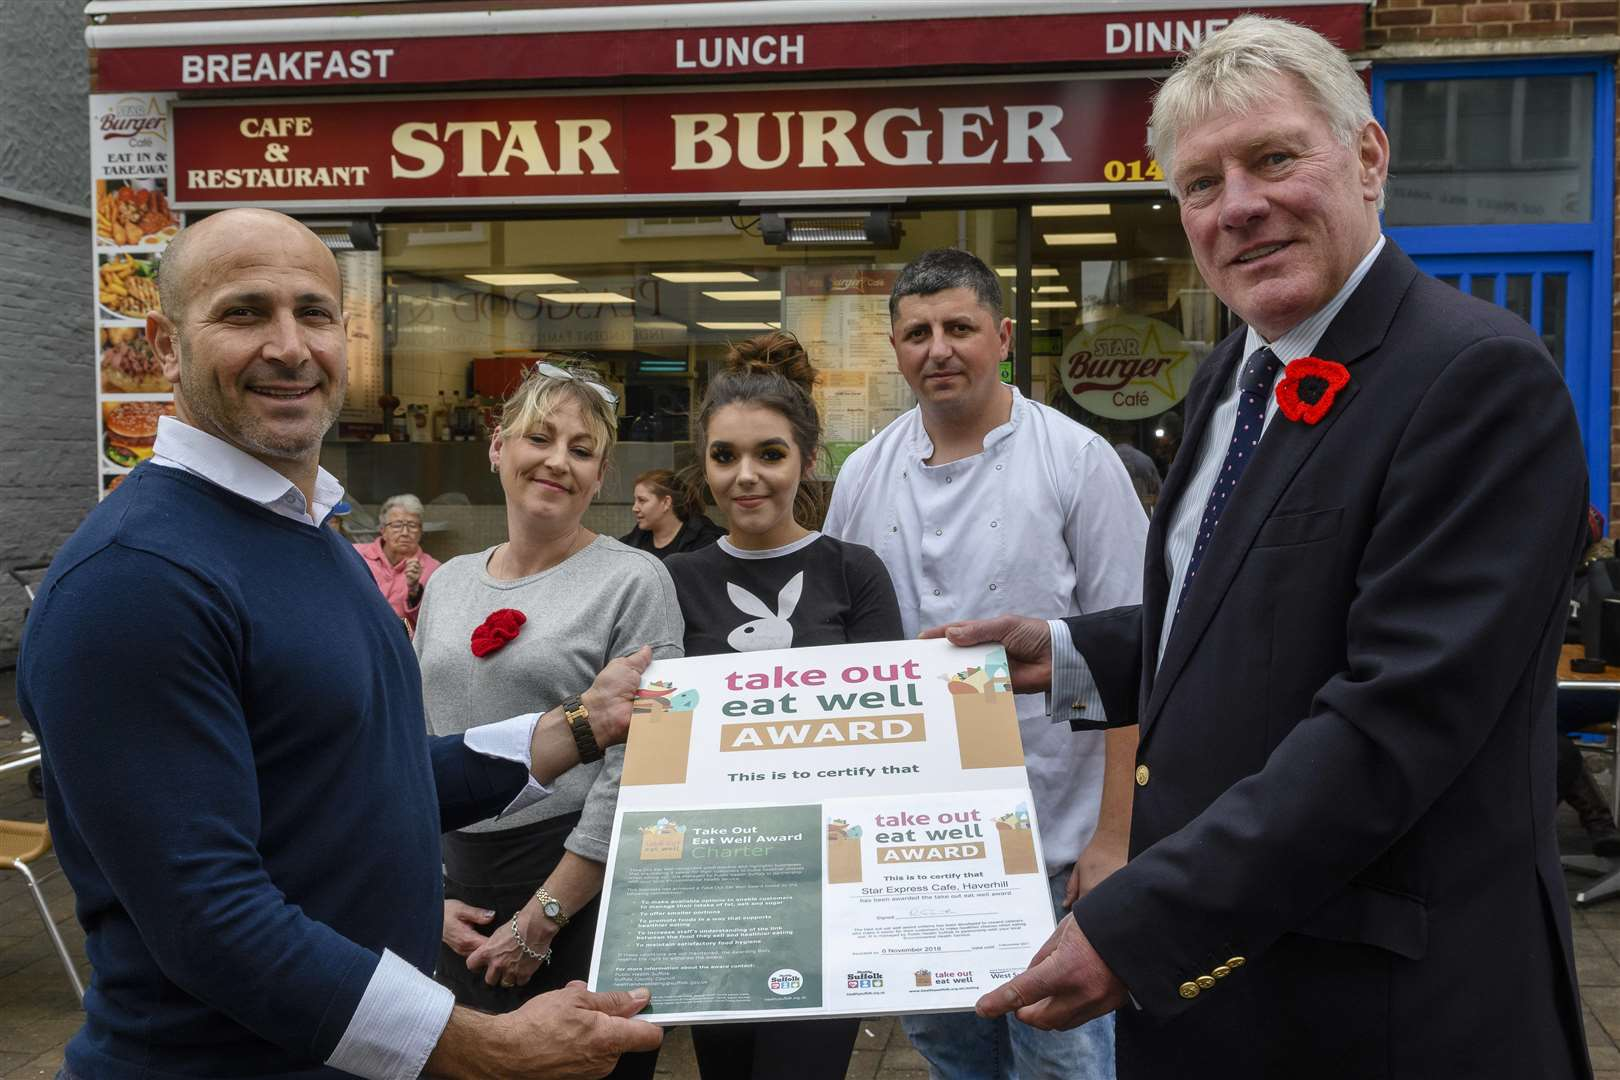 Haverhill, Suffolk, UK, 06 November 2018..Cllr John Griffiths (right) of St Edmundsbury awarding the first Council Take Out Eat Well Awards in West Suffolk which recognises takeaway food businesses that offer healthier food choices, to Ali Yagir Star Burger on Queen Street, Haverhill with staff behind from left Julia Bridgeman, Katie Battersby and Omer Sadik...Picture: Mark Bullimore Photography. (5258609)